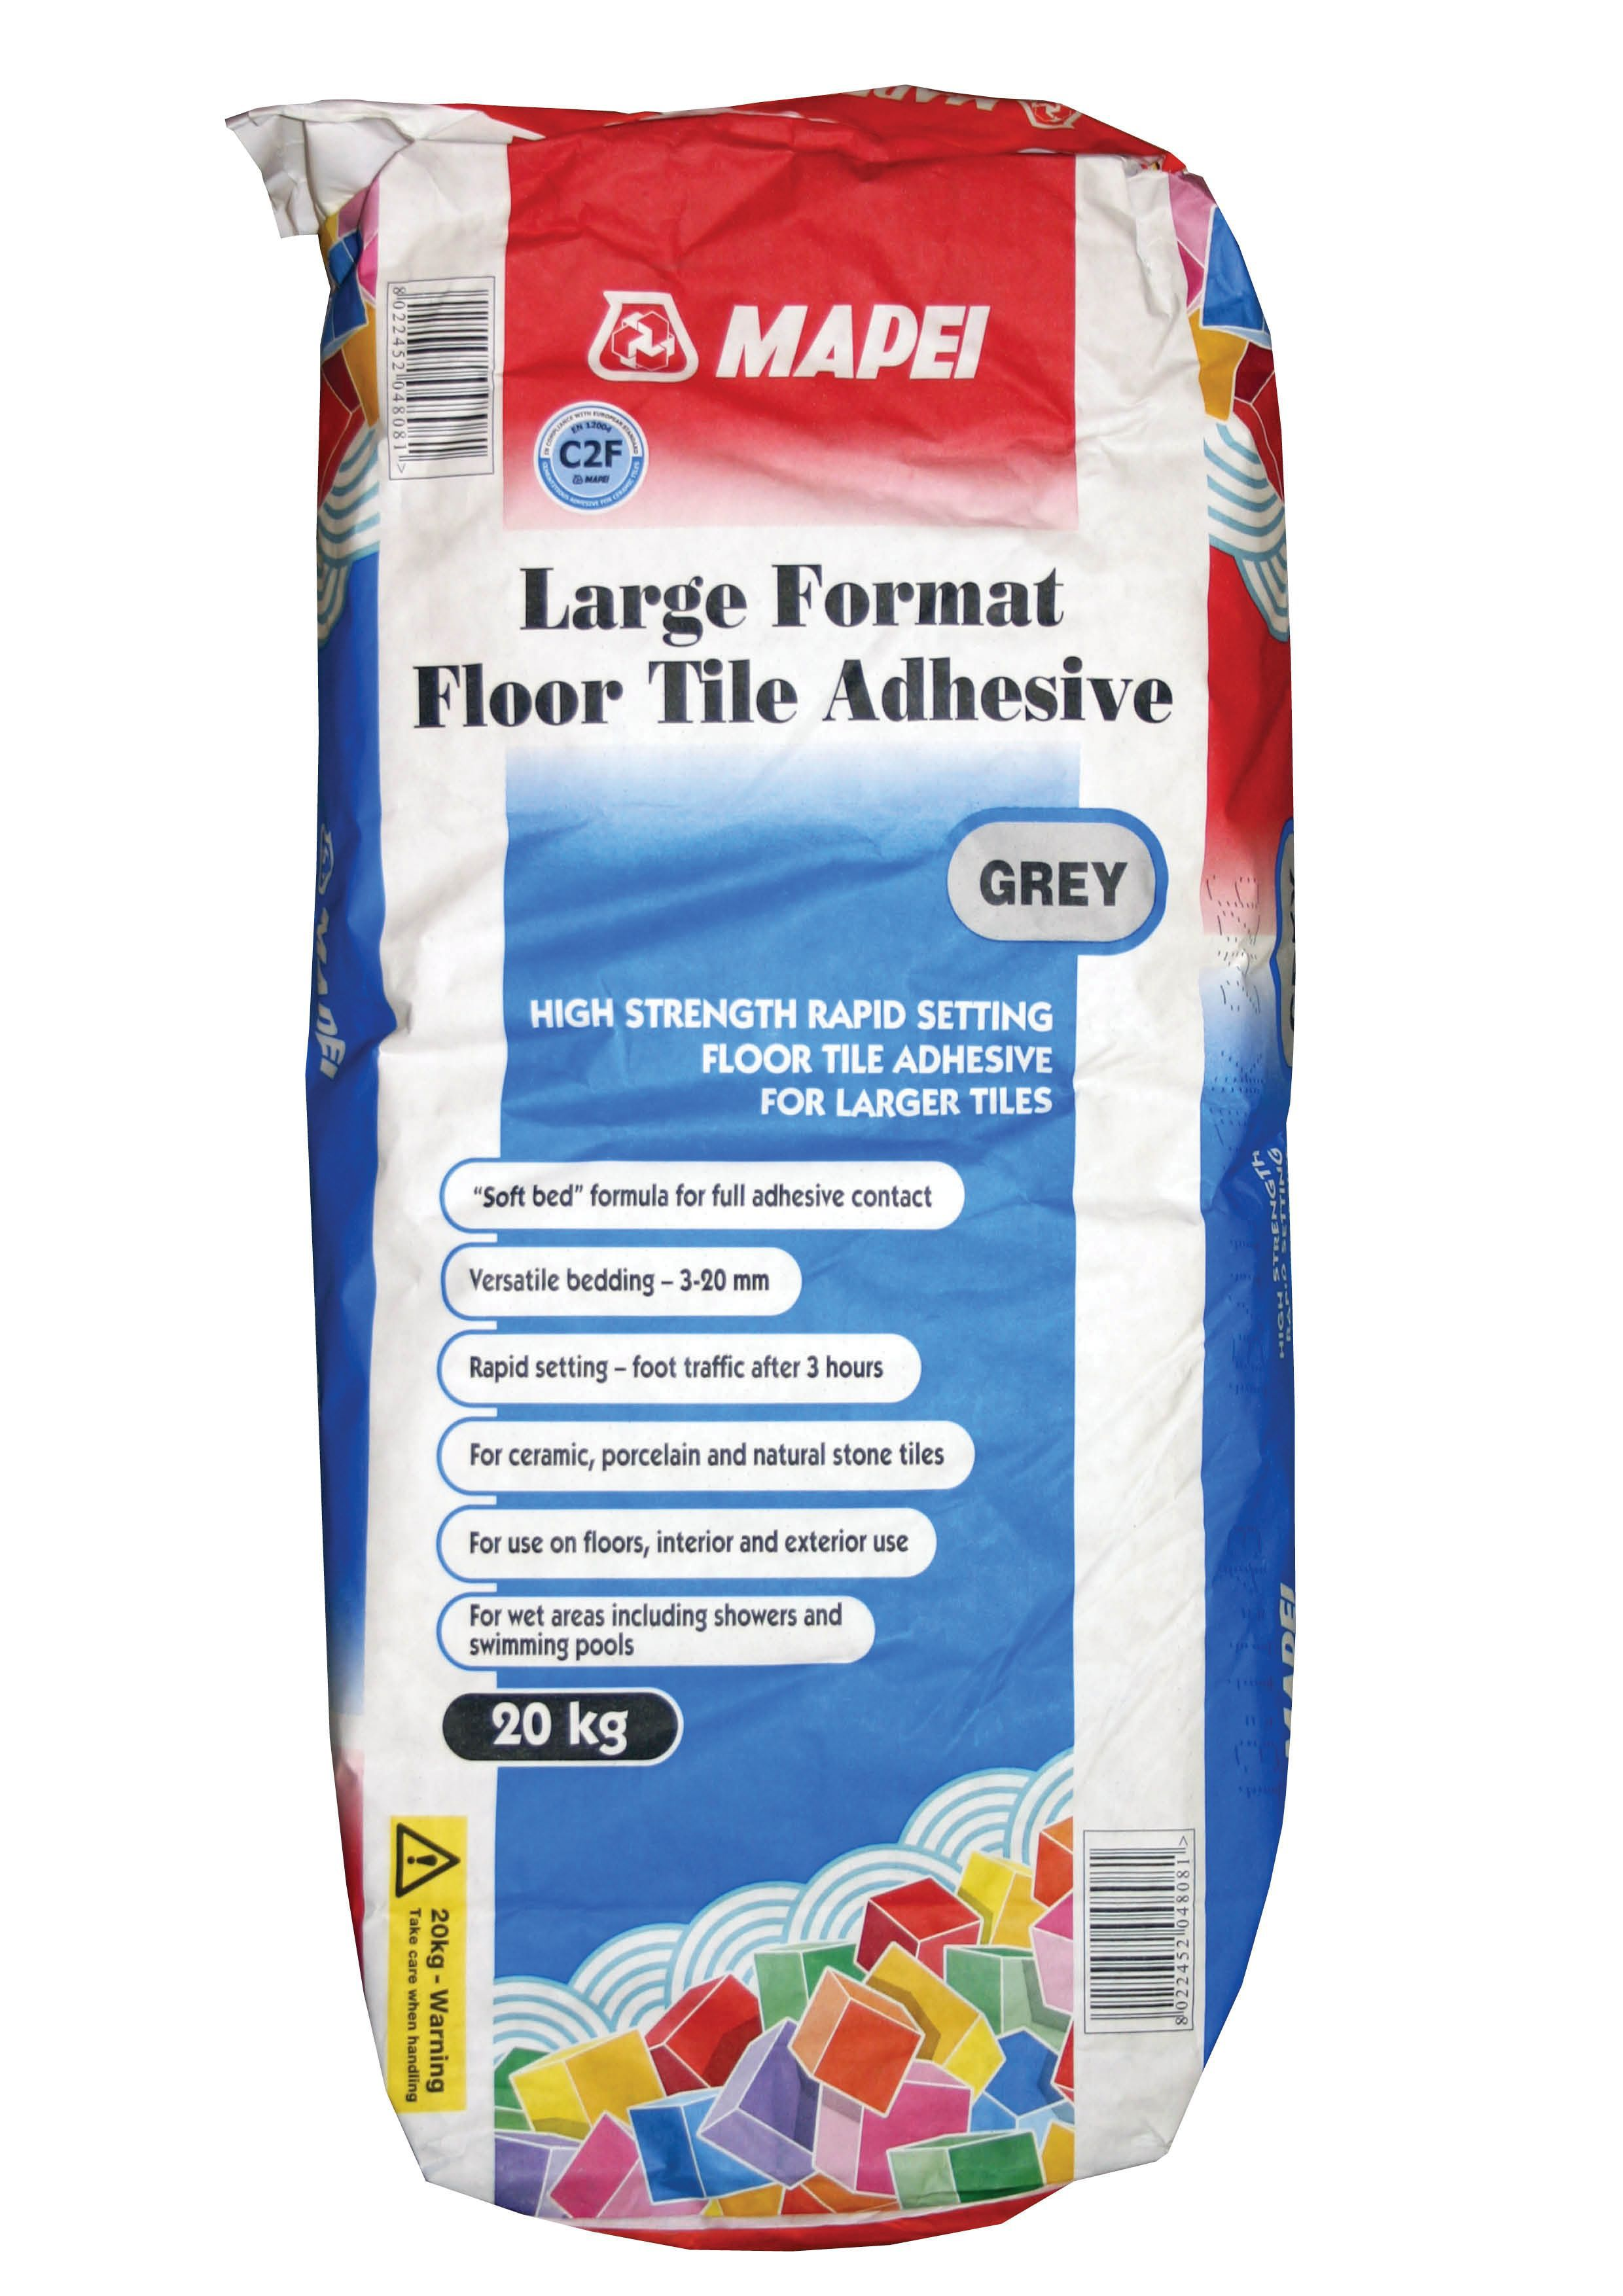 Mapei large format powder floor tile adhesive grey 20kg mapei large format powder floor tile adhesive grey 20kg departments diy at bq dailygadgetfo Gallery